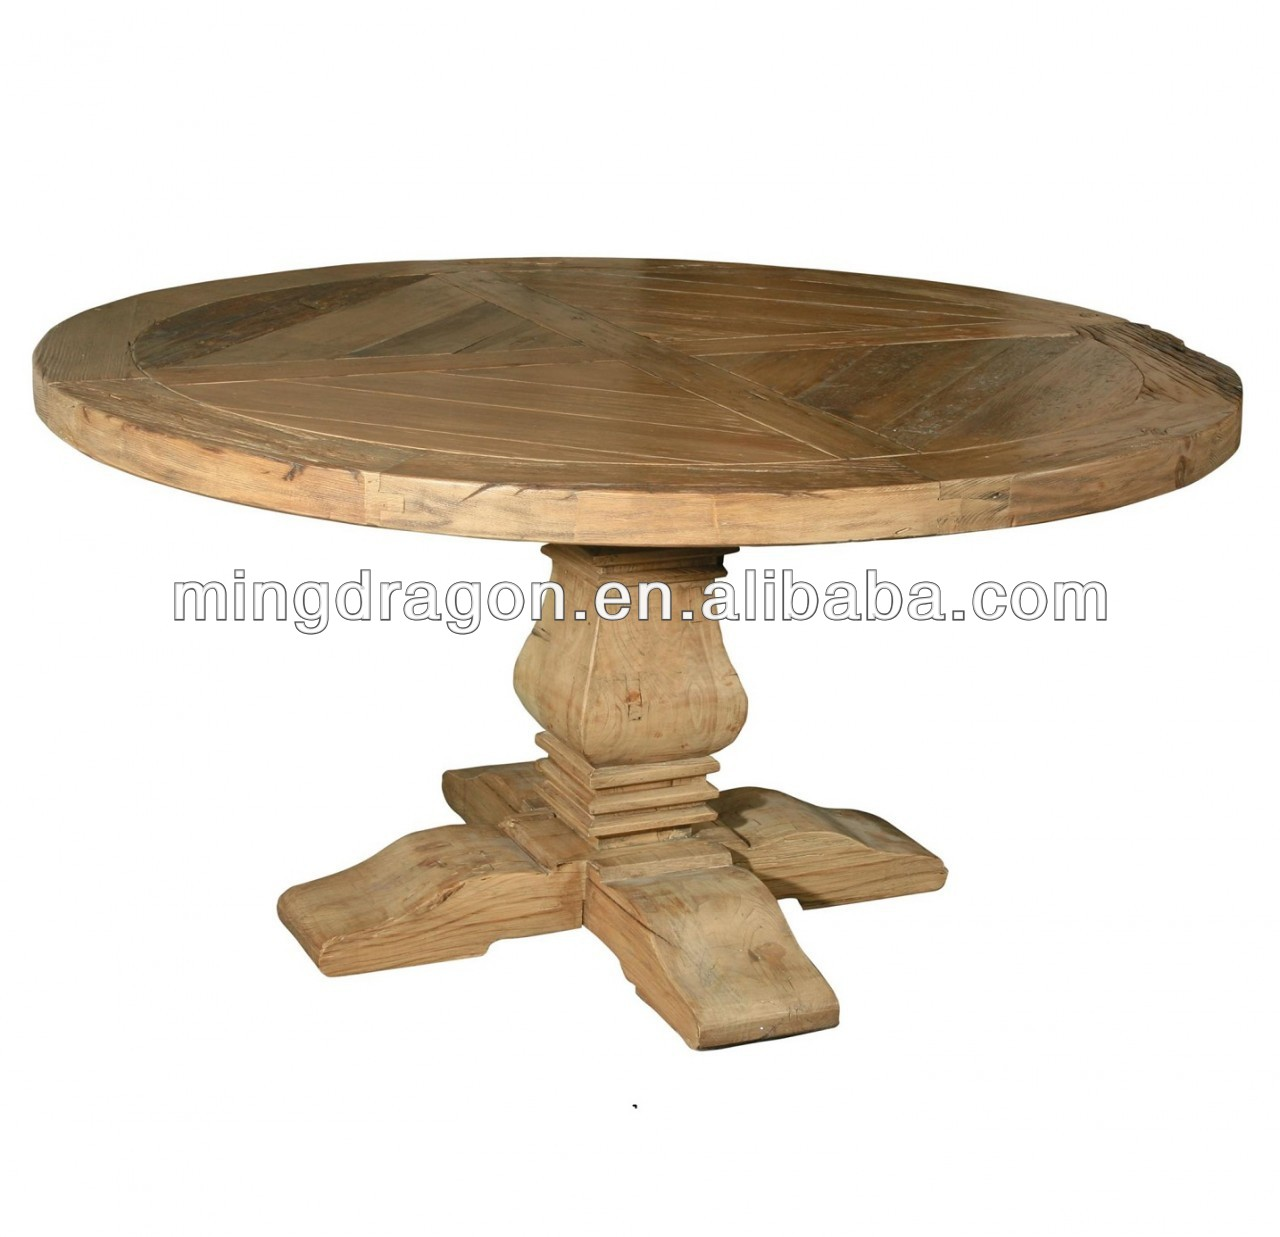 Industrial Style Round Dining Table Elm Wood Dining Table Elm Wood Dining Table Suppliers And